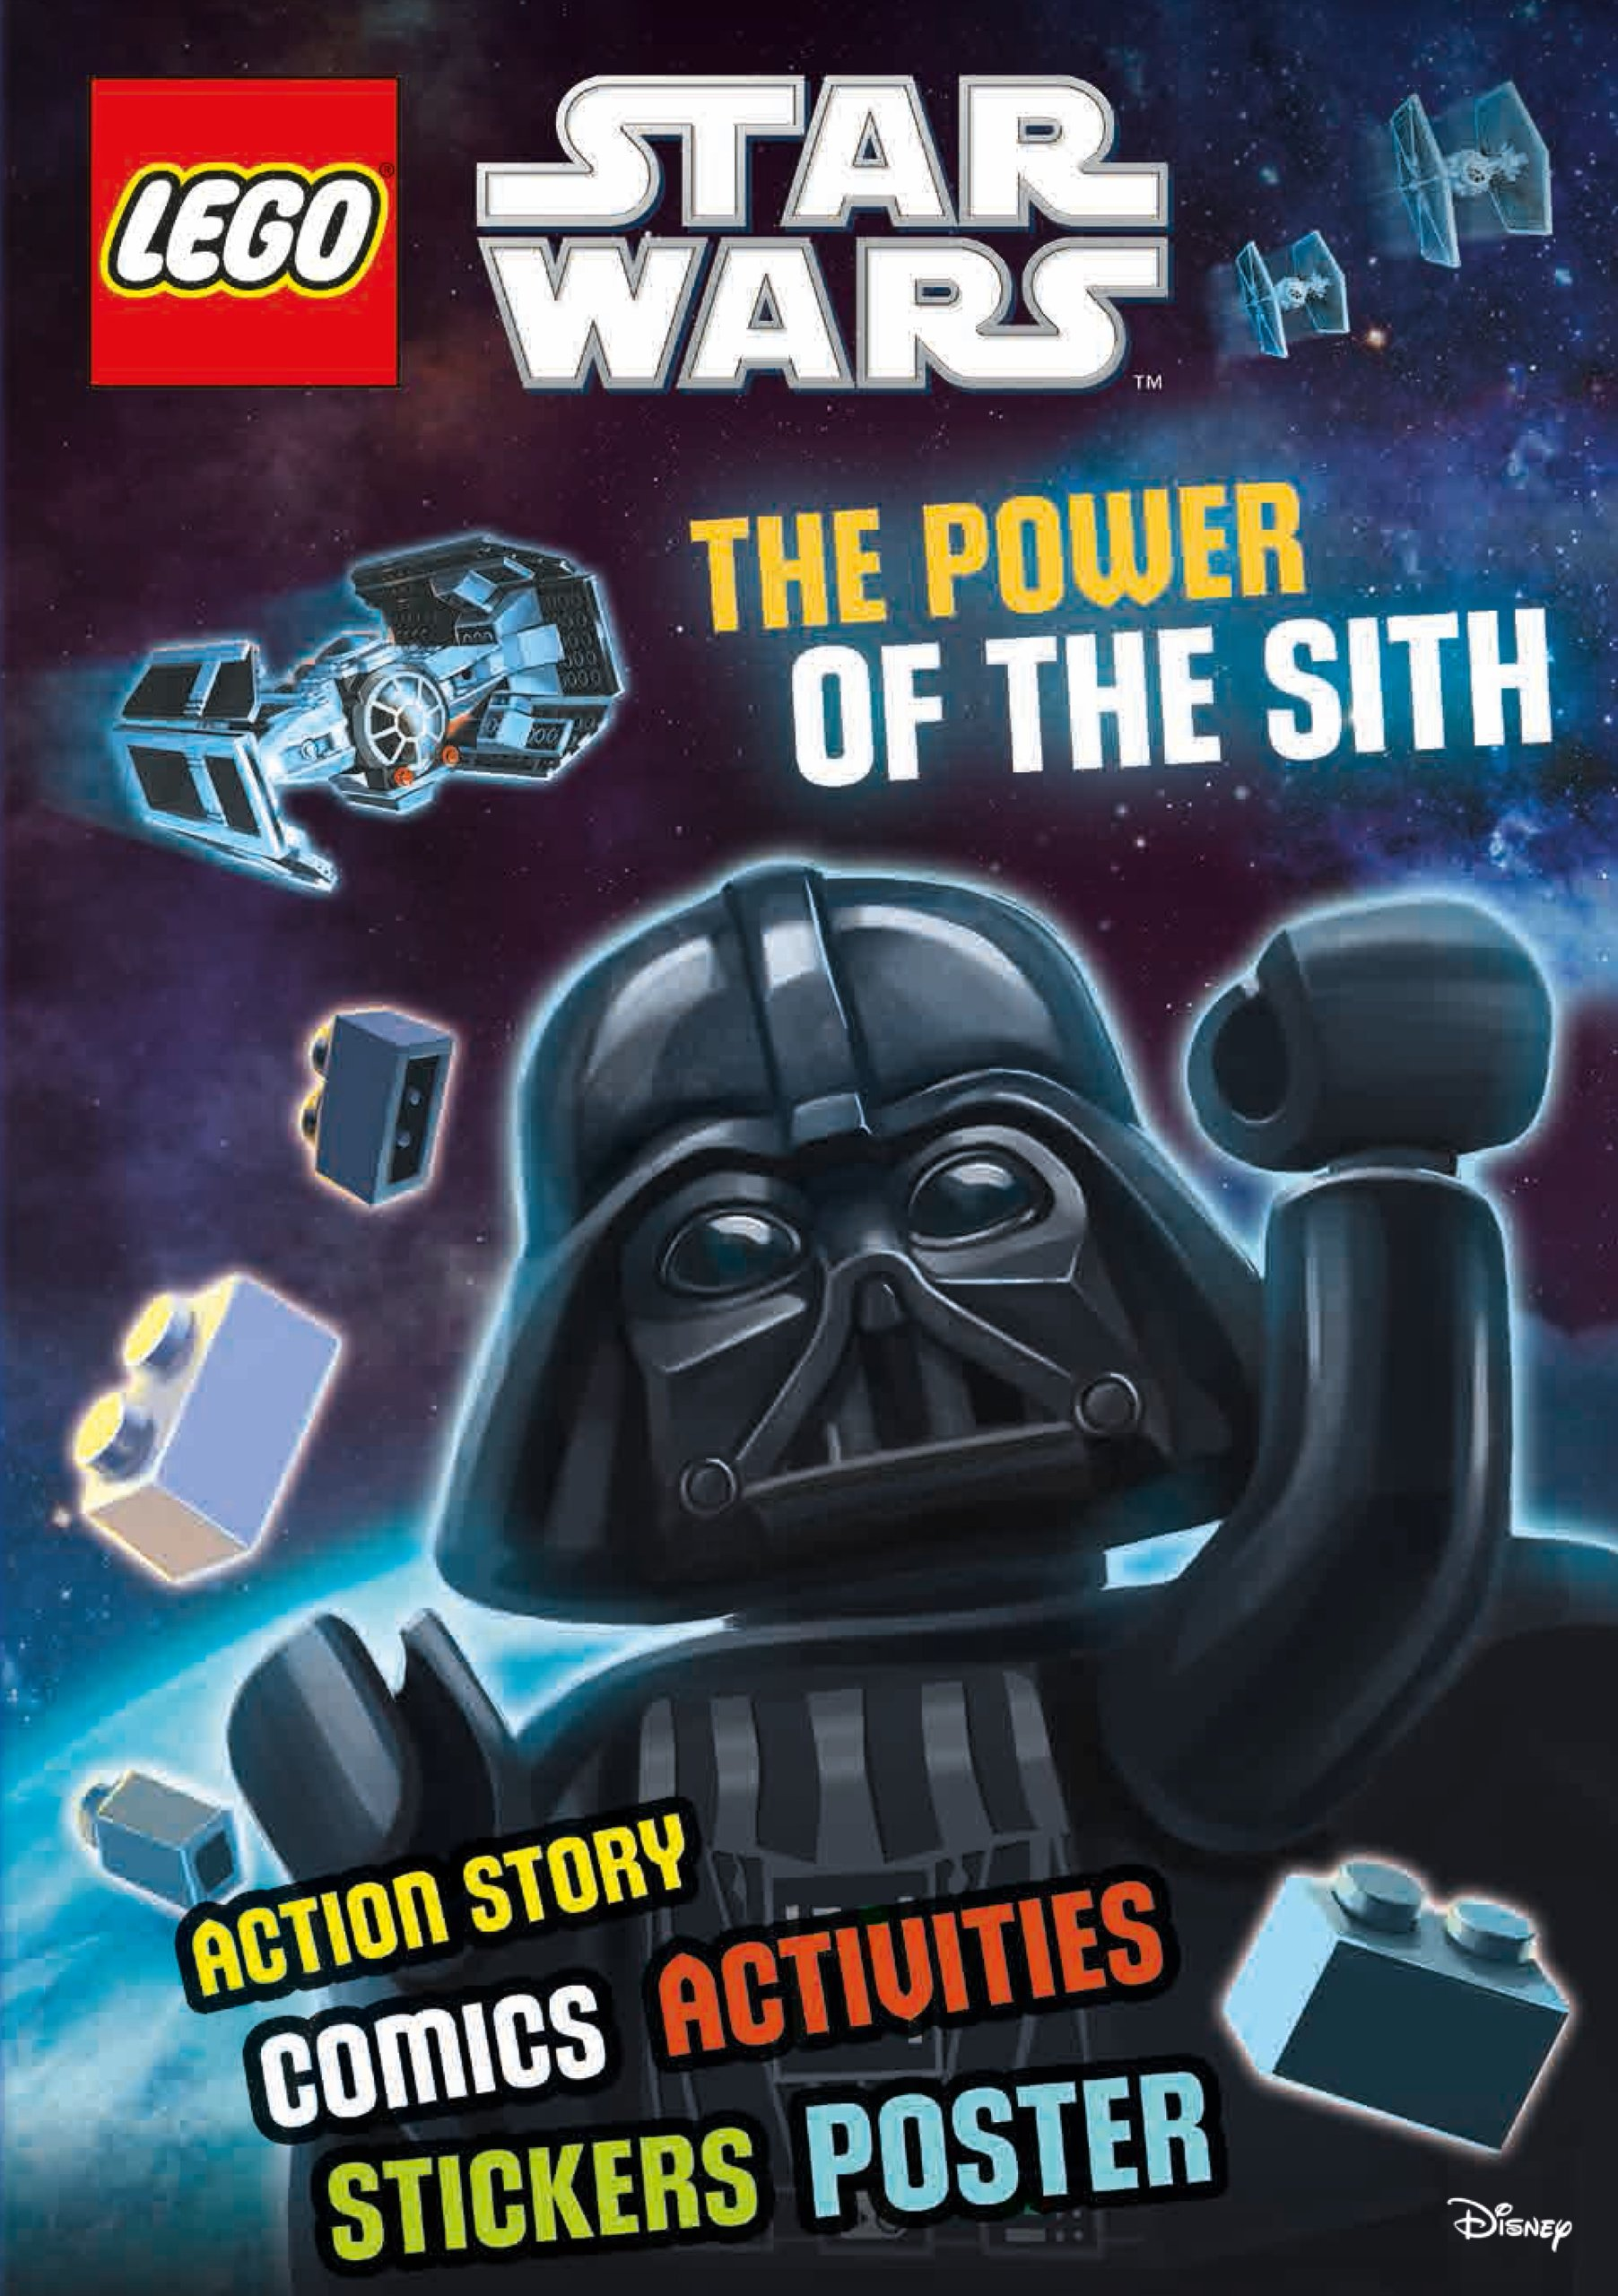 Lego Star Wars: The Power of the Sith